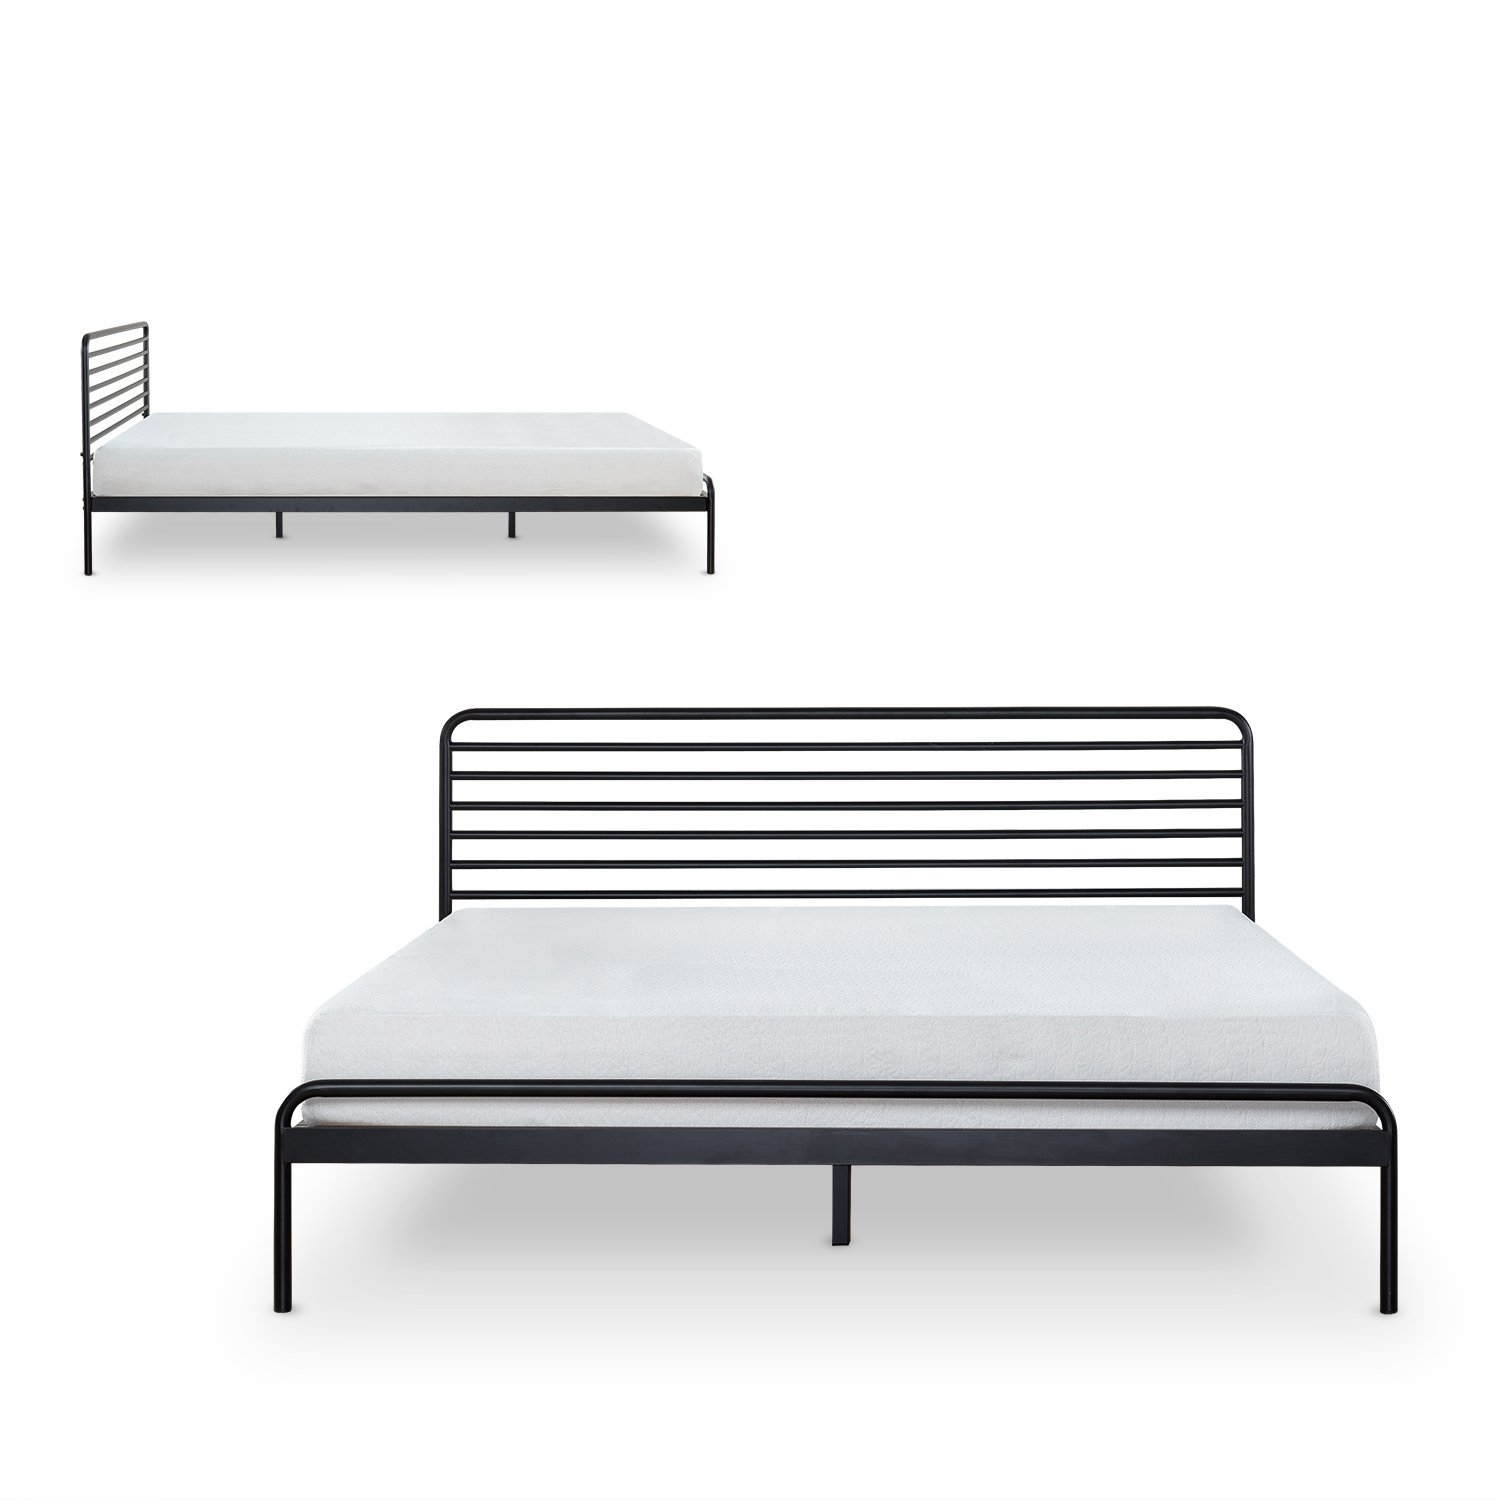 Zinus Tom Metal Platform Bed Frame / Mattress Foundation / No Box Spring Needed / Wood Slat Support / Design Award Winner, Full